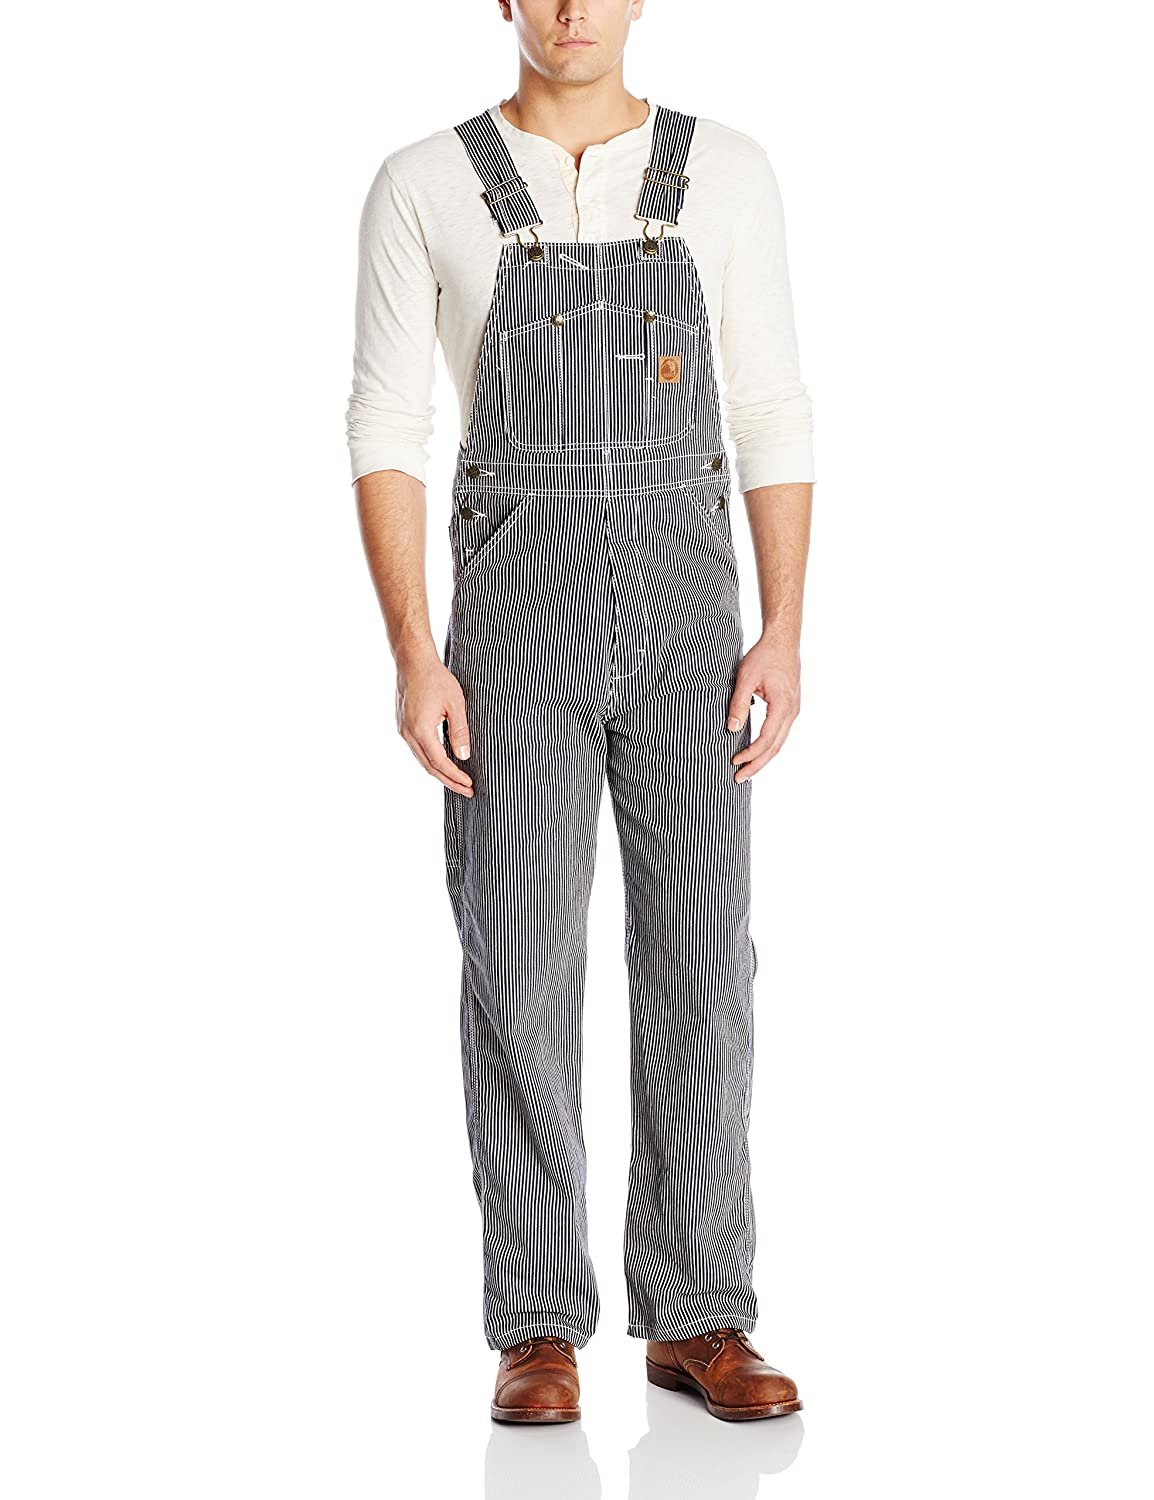 Edwardian Men's Pants Berne Mens Original Unlined Bib Overall $49.99 AT vintagedancer.com